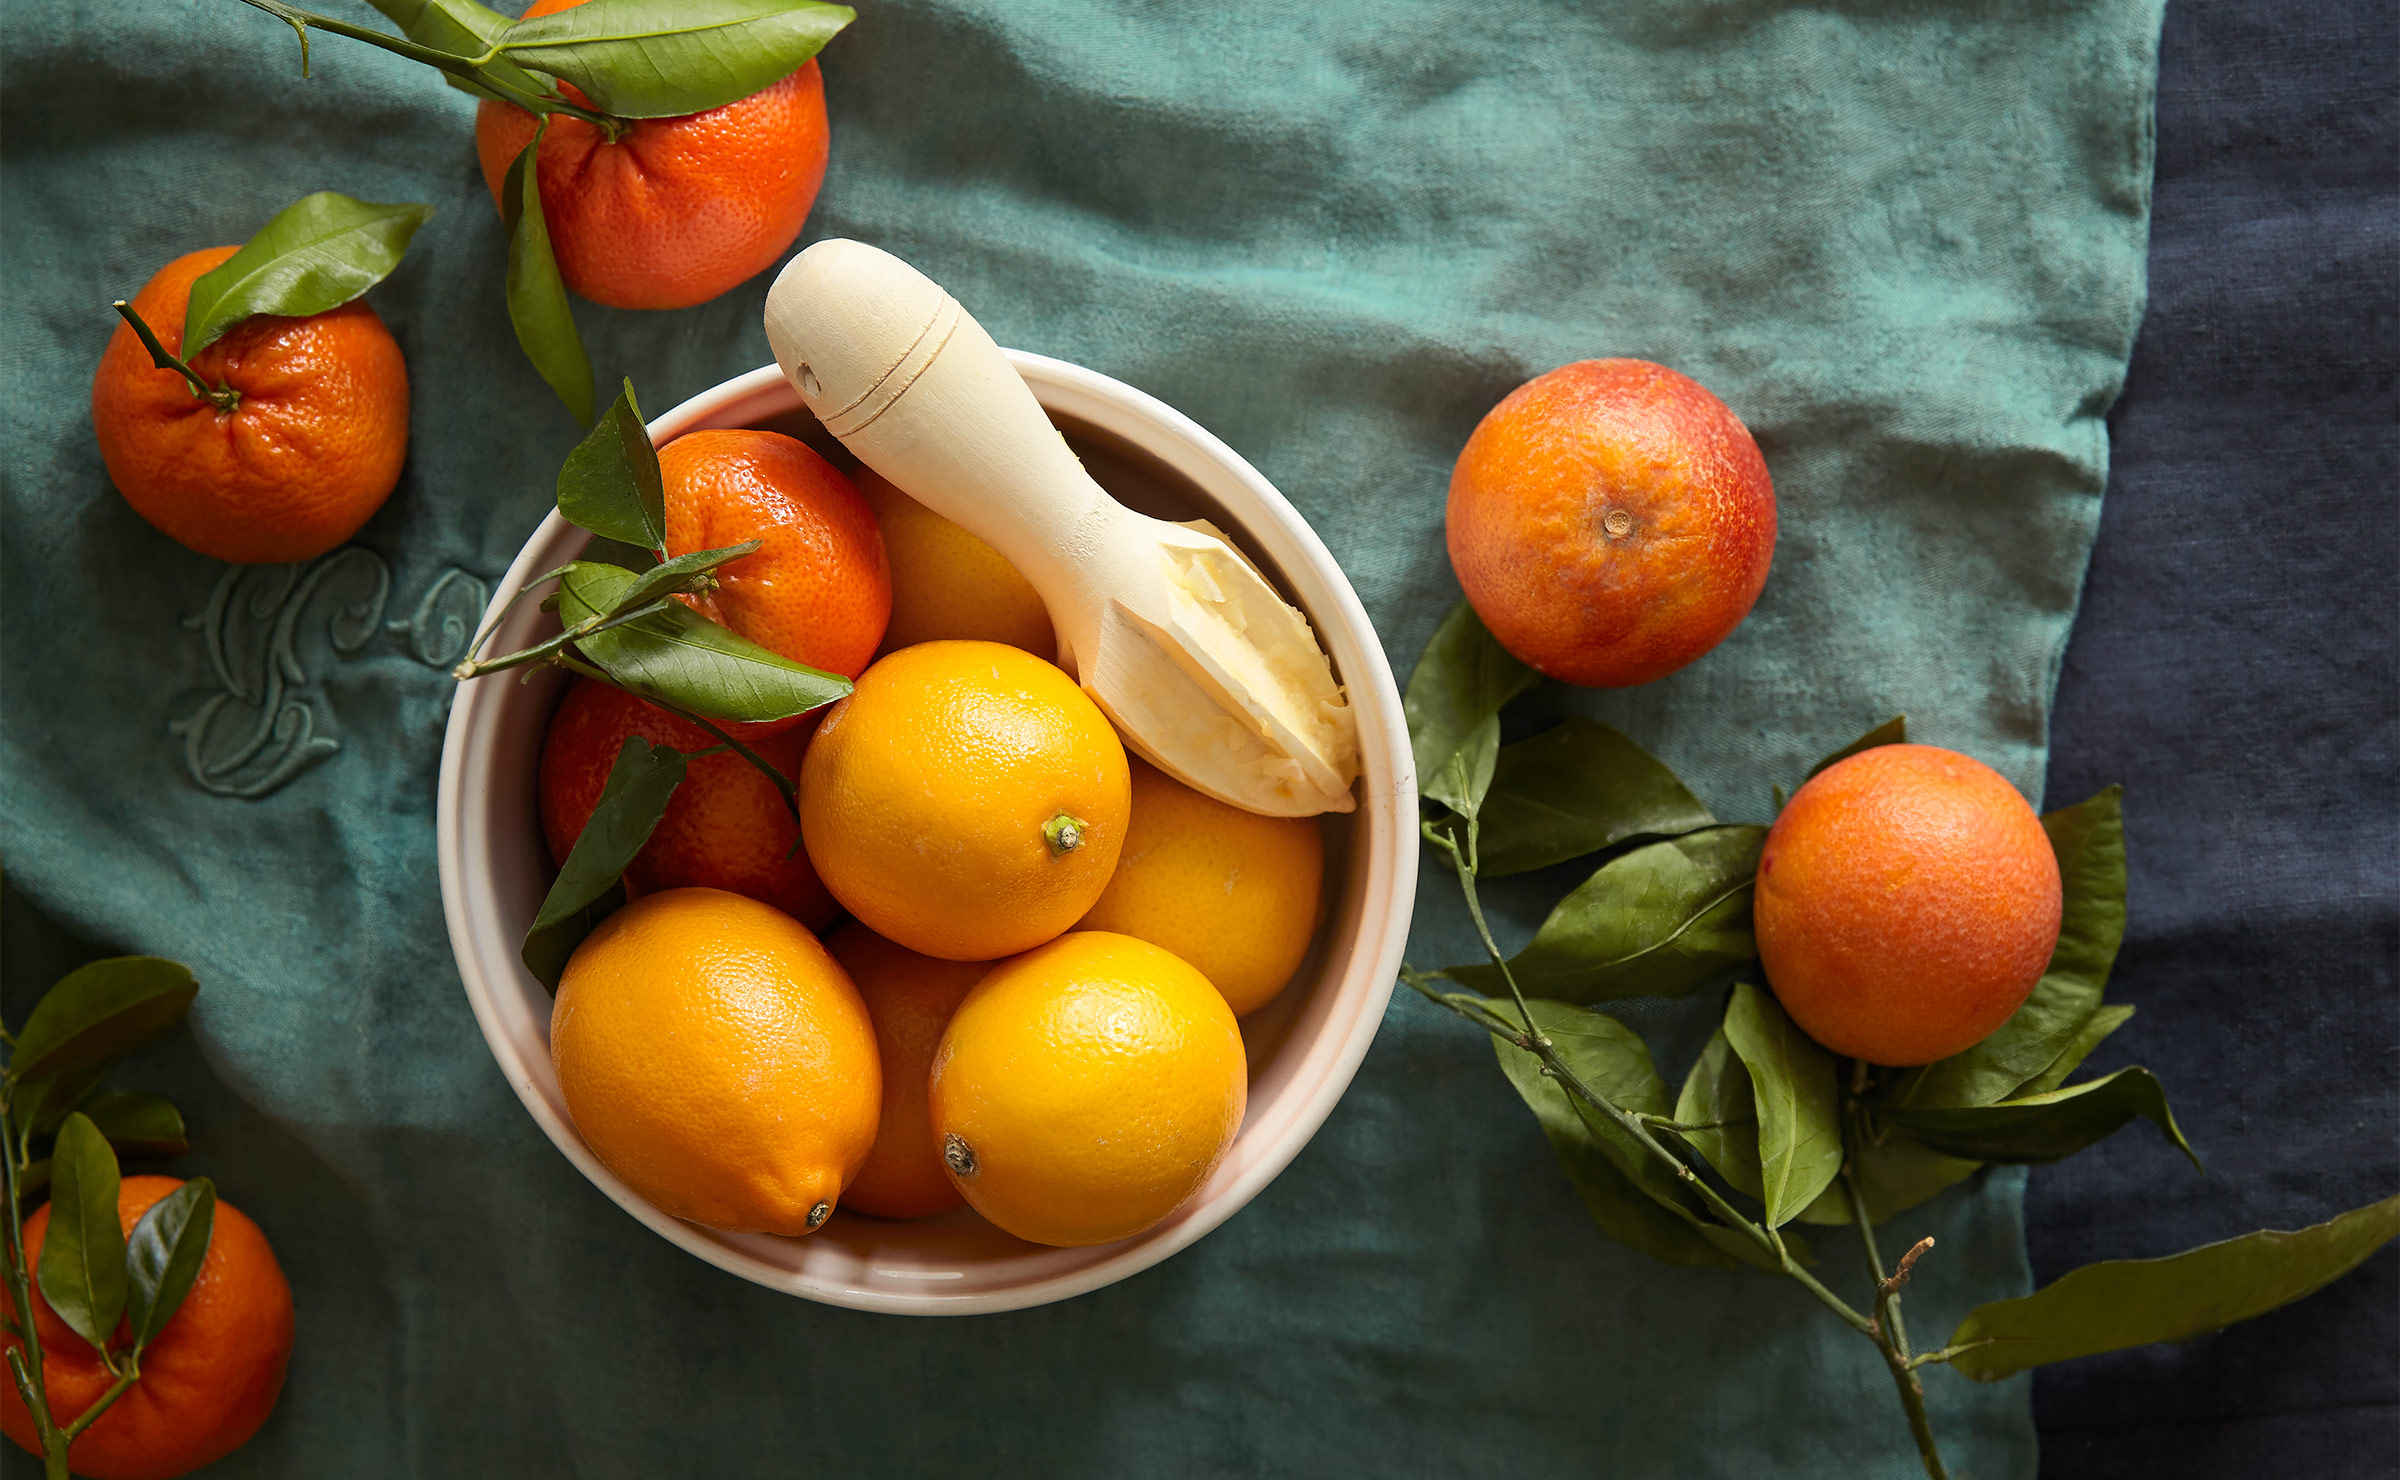 Meyer-lemon-and-blood-oranges